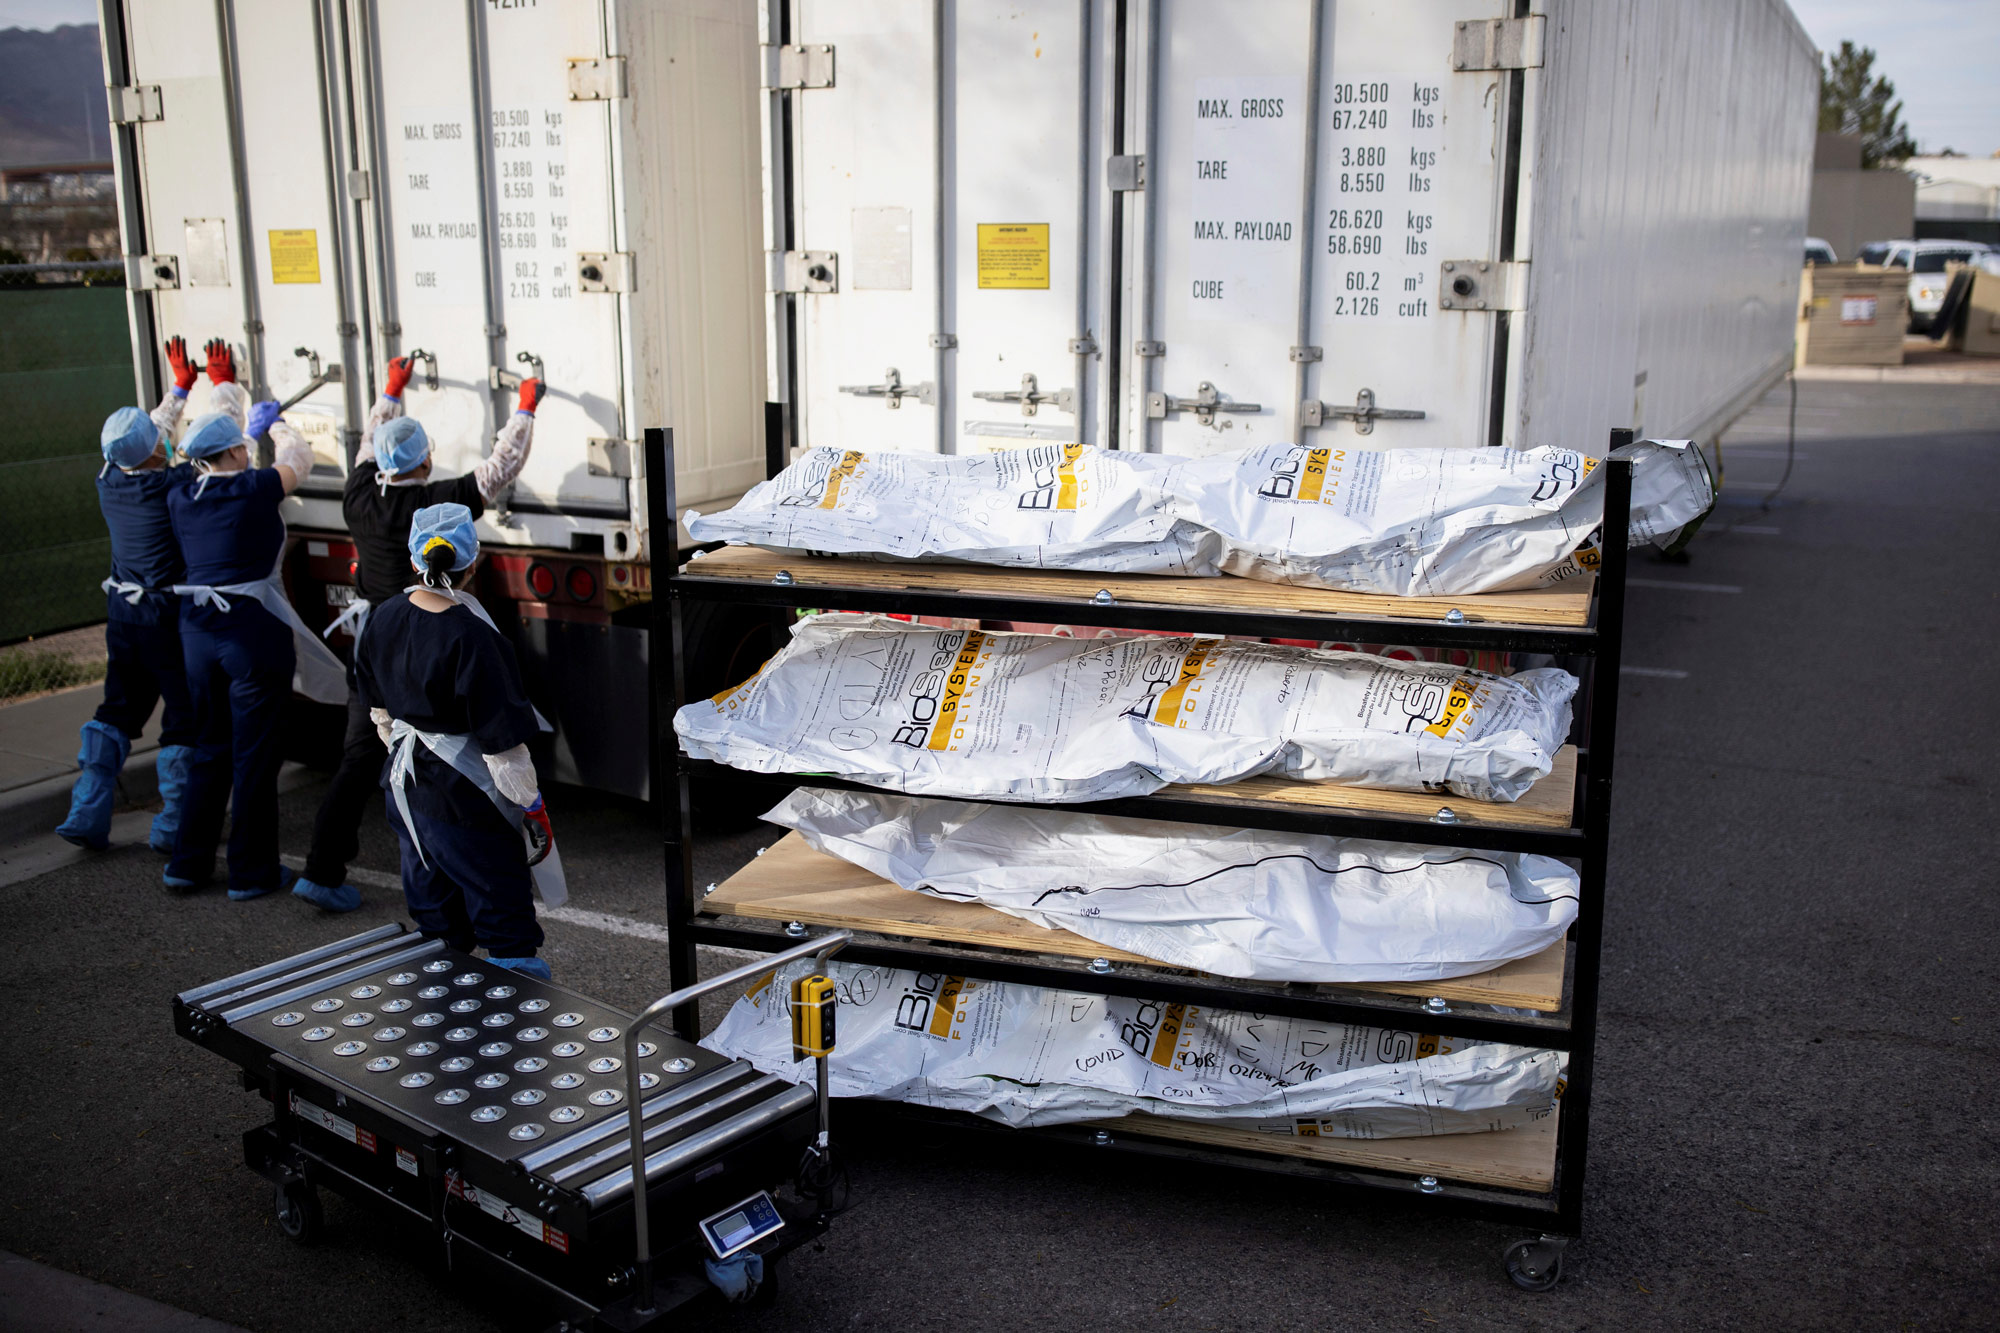 Workers in El Paso, Texas, move coronavirus victims from refrigerated trailers into the main morgue on November 23.